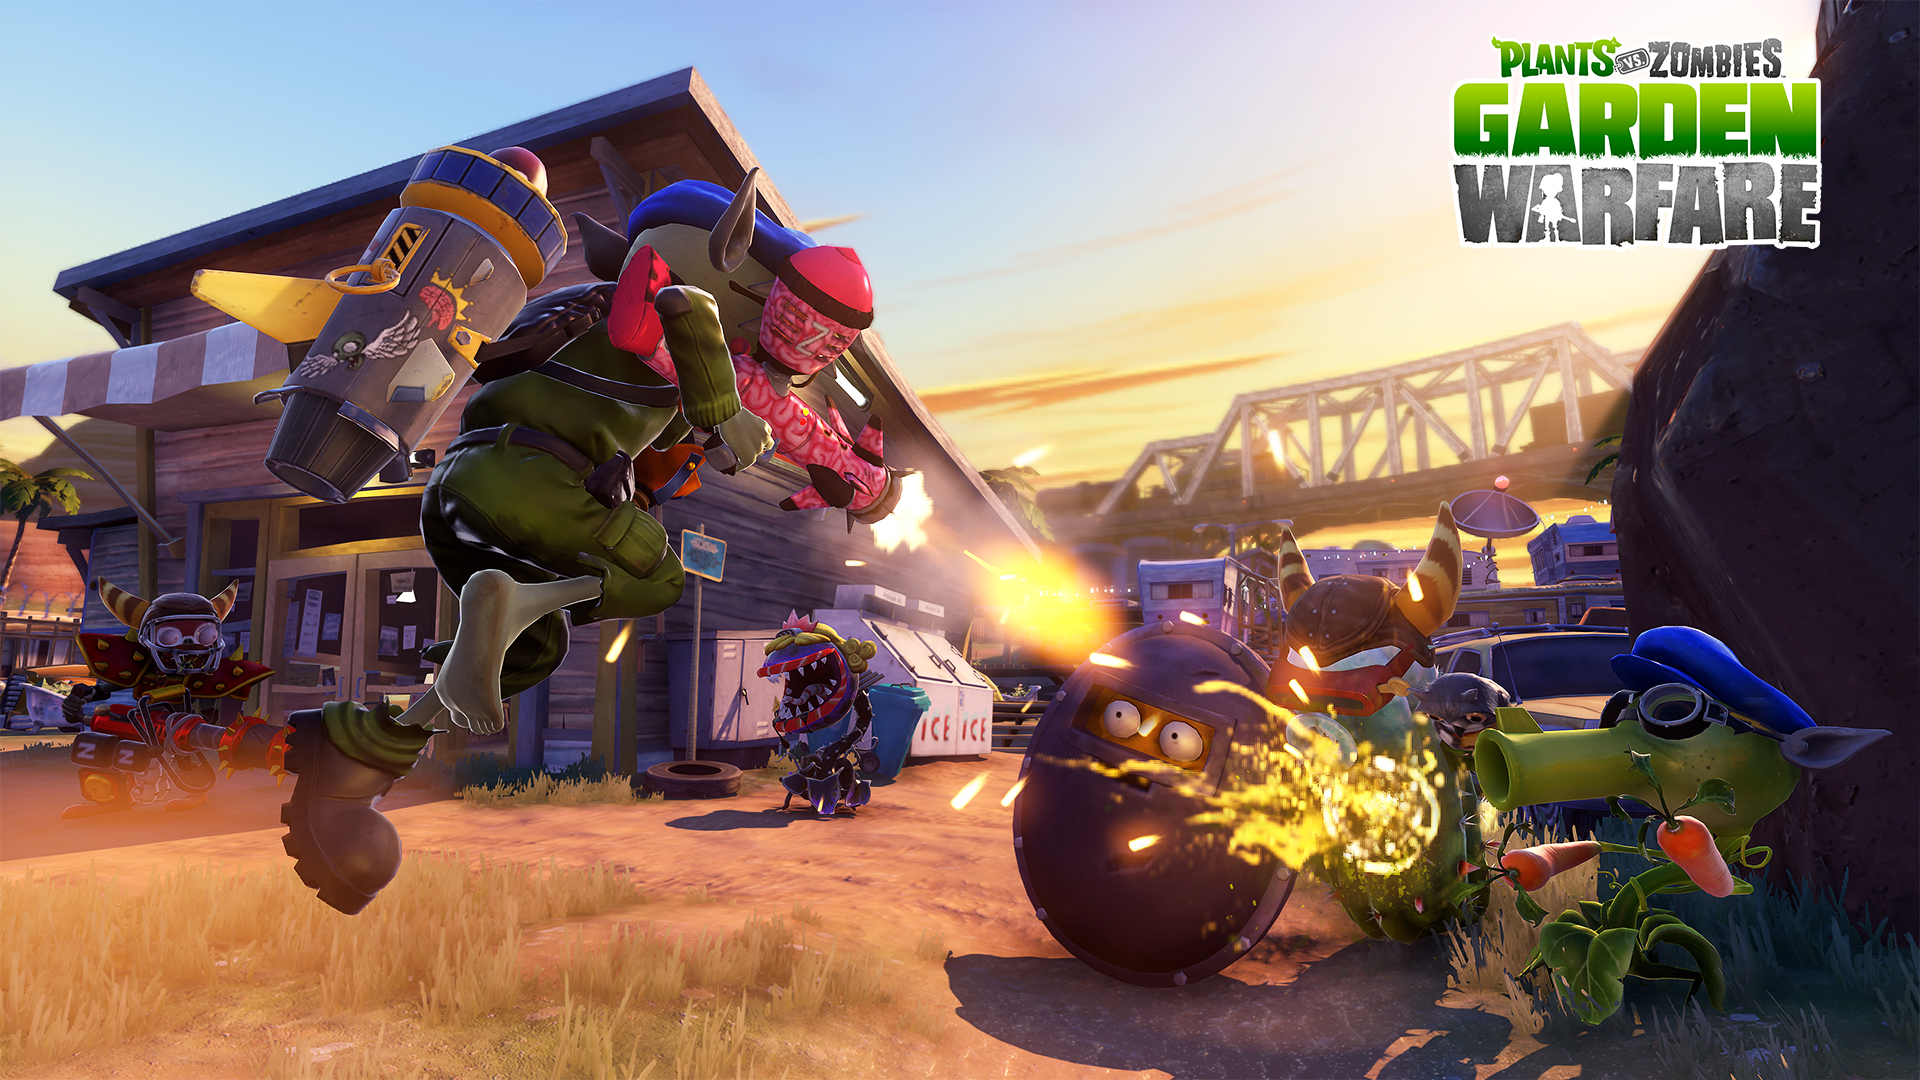 Plants Vs Zombies Garden Warfare Confirmed For Playstation Consoles 1080p And 60 Fps On Ps4